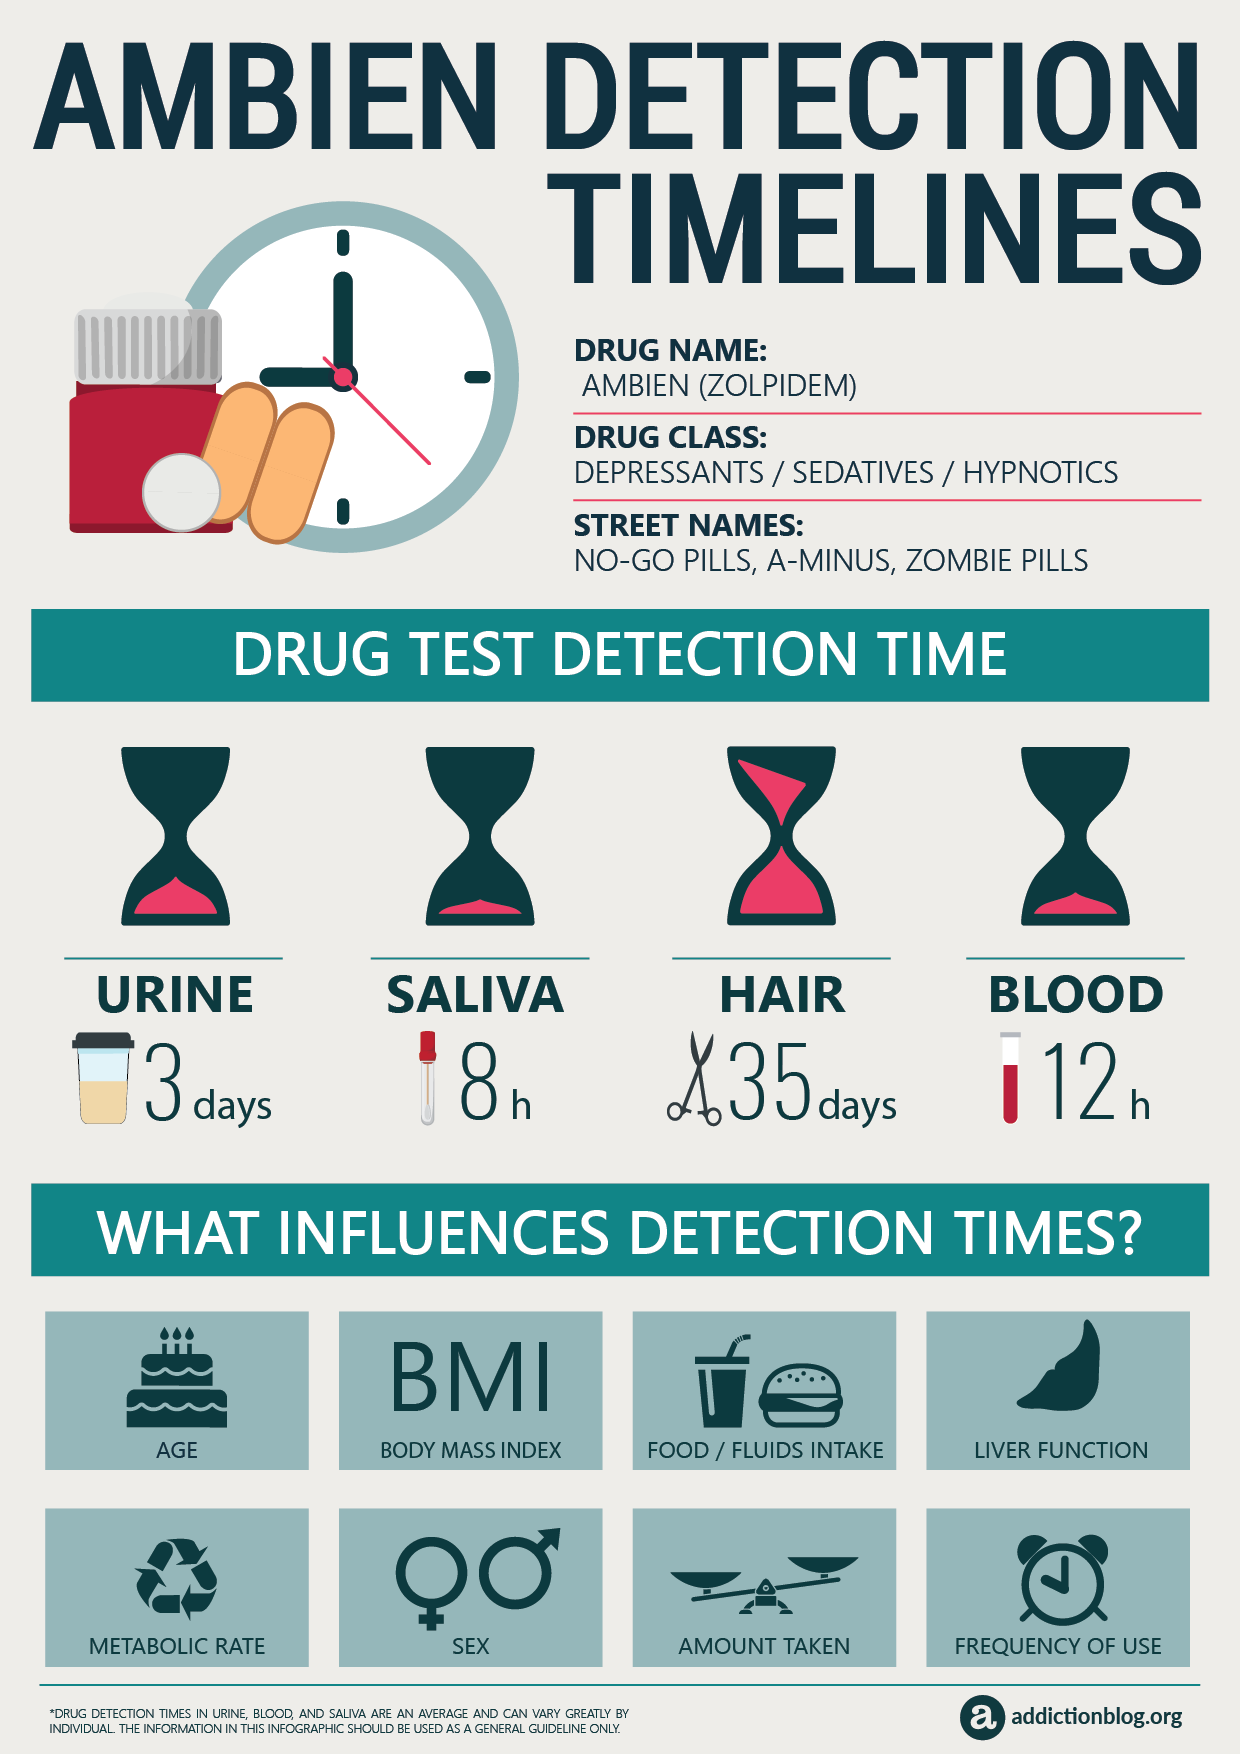 Ambien Detection Timelines [INFOGRAPHIC]